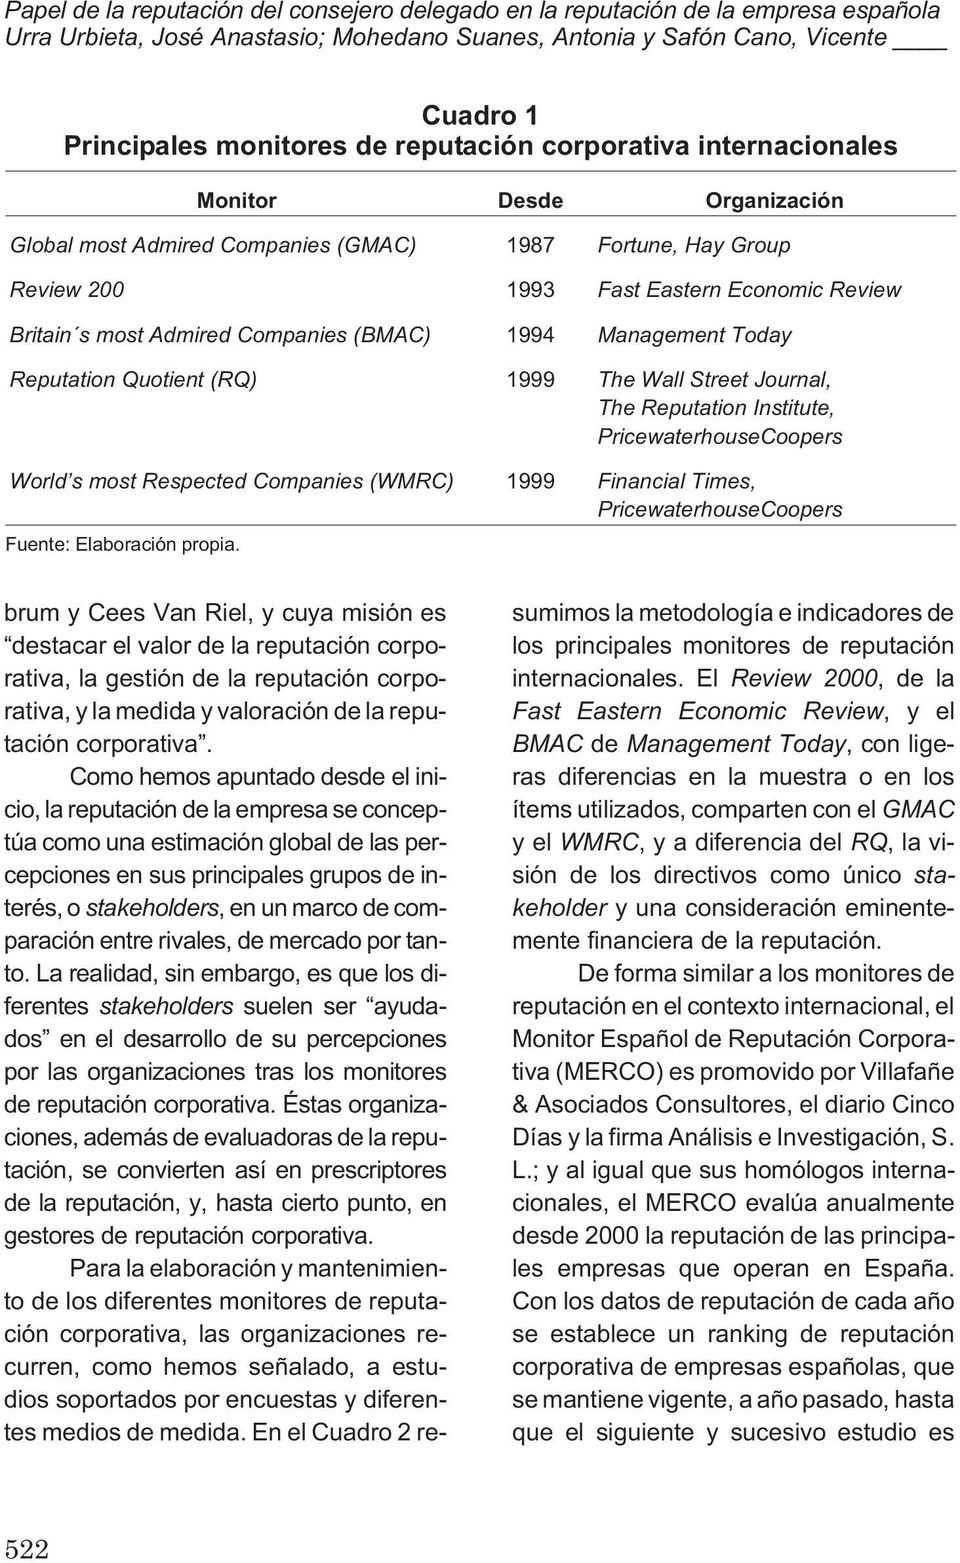 Companies (BMAC) 1994 Management Today Reputation Quotient (RQ) 1999 The Wall Street Journal, The Reputation Institute, PricewaterhouseCoopers World s most Respected Companies (WMRC) 1999 Financial